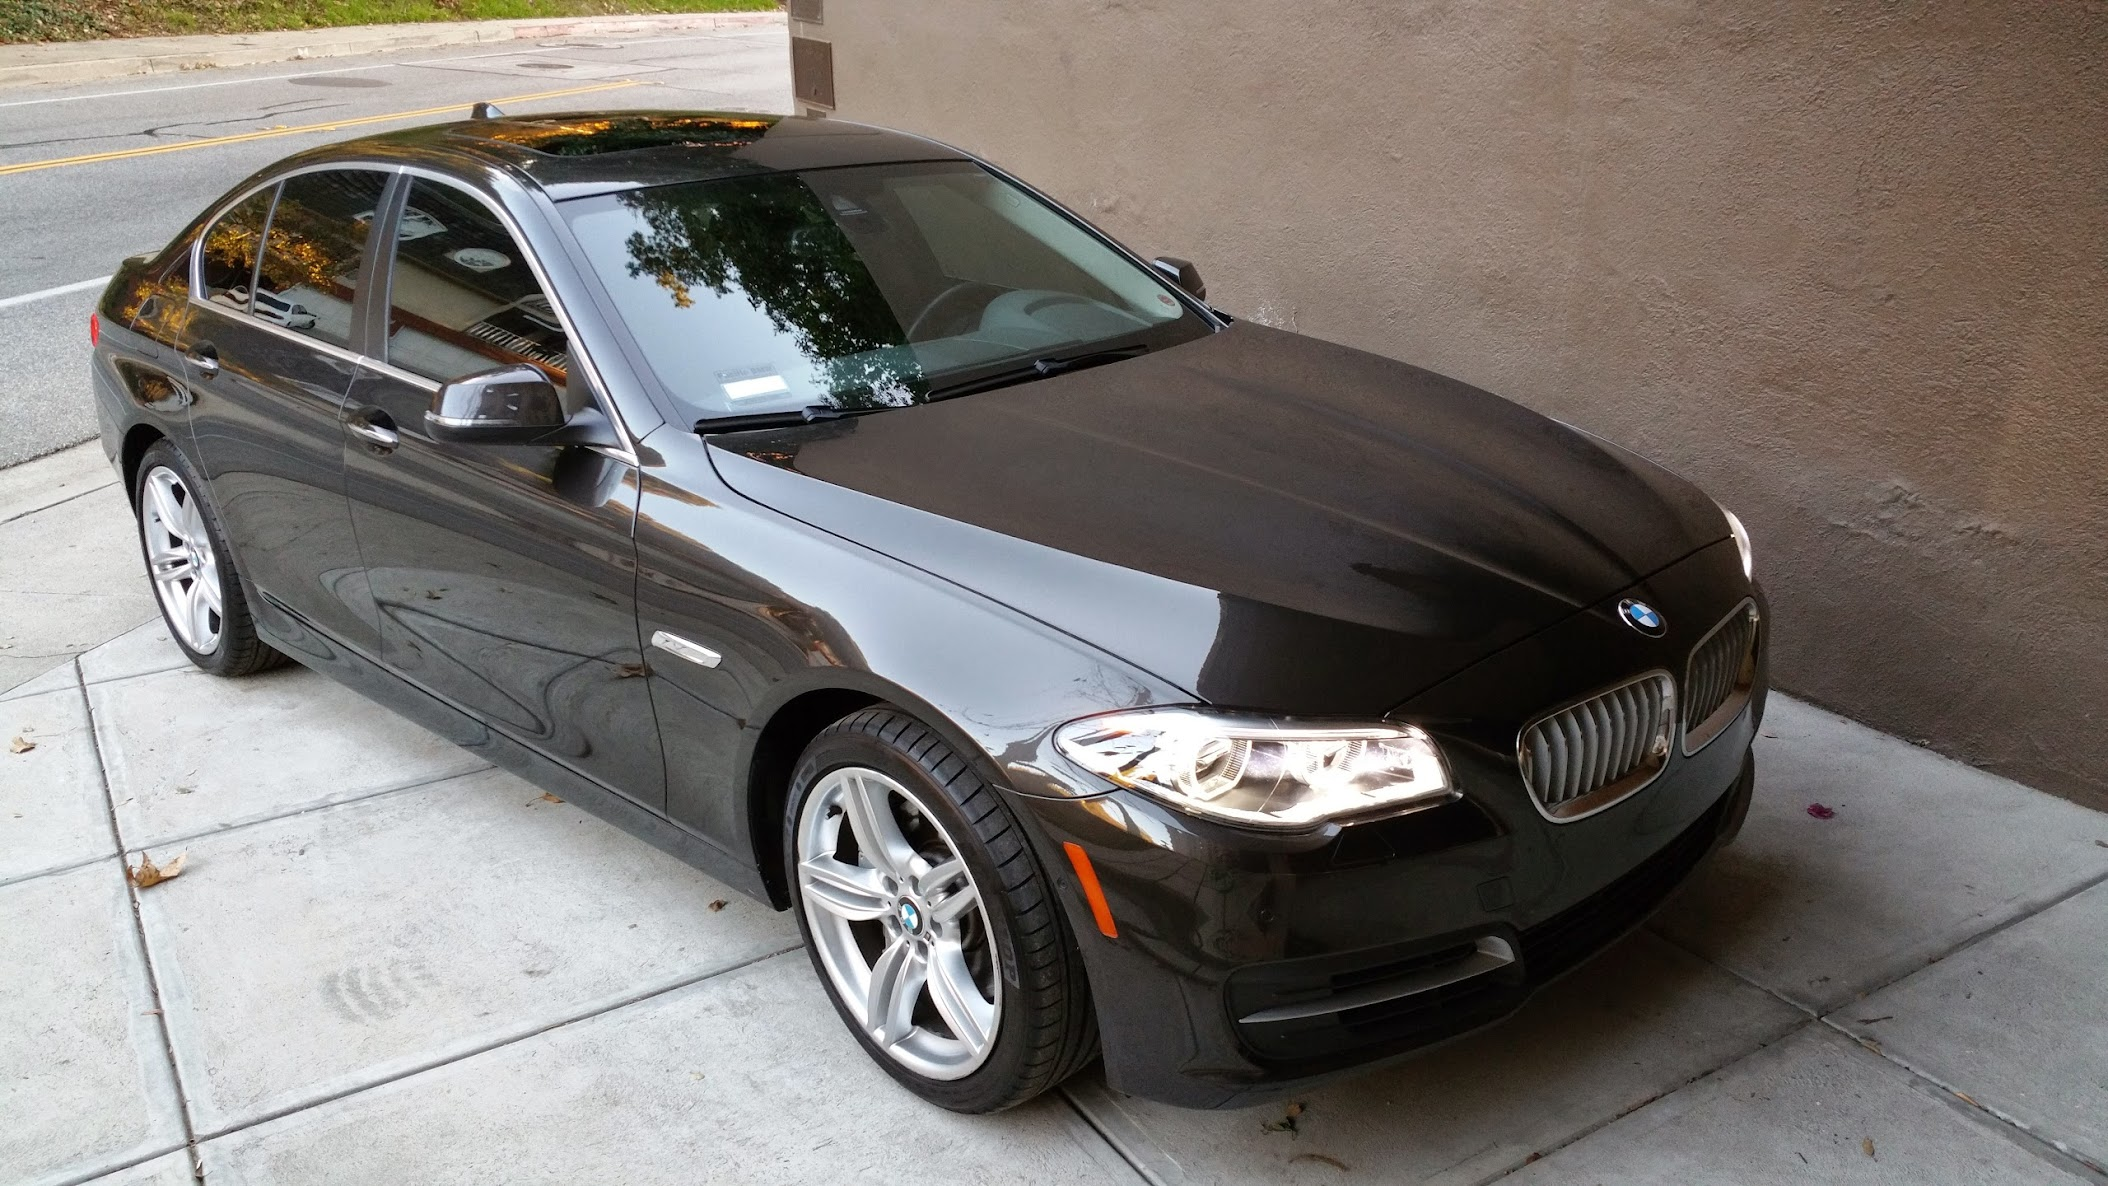 F10 Feeler 2014 BMW 550i lease takeover CHEAP  Bimmerfest  BMW